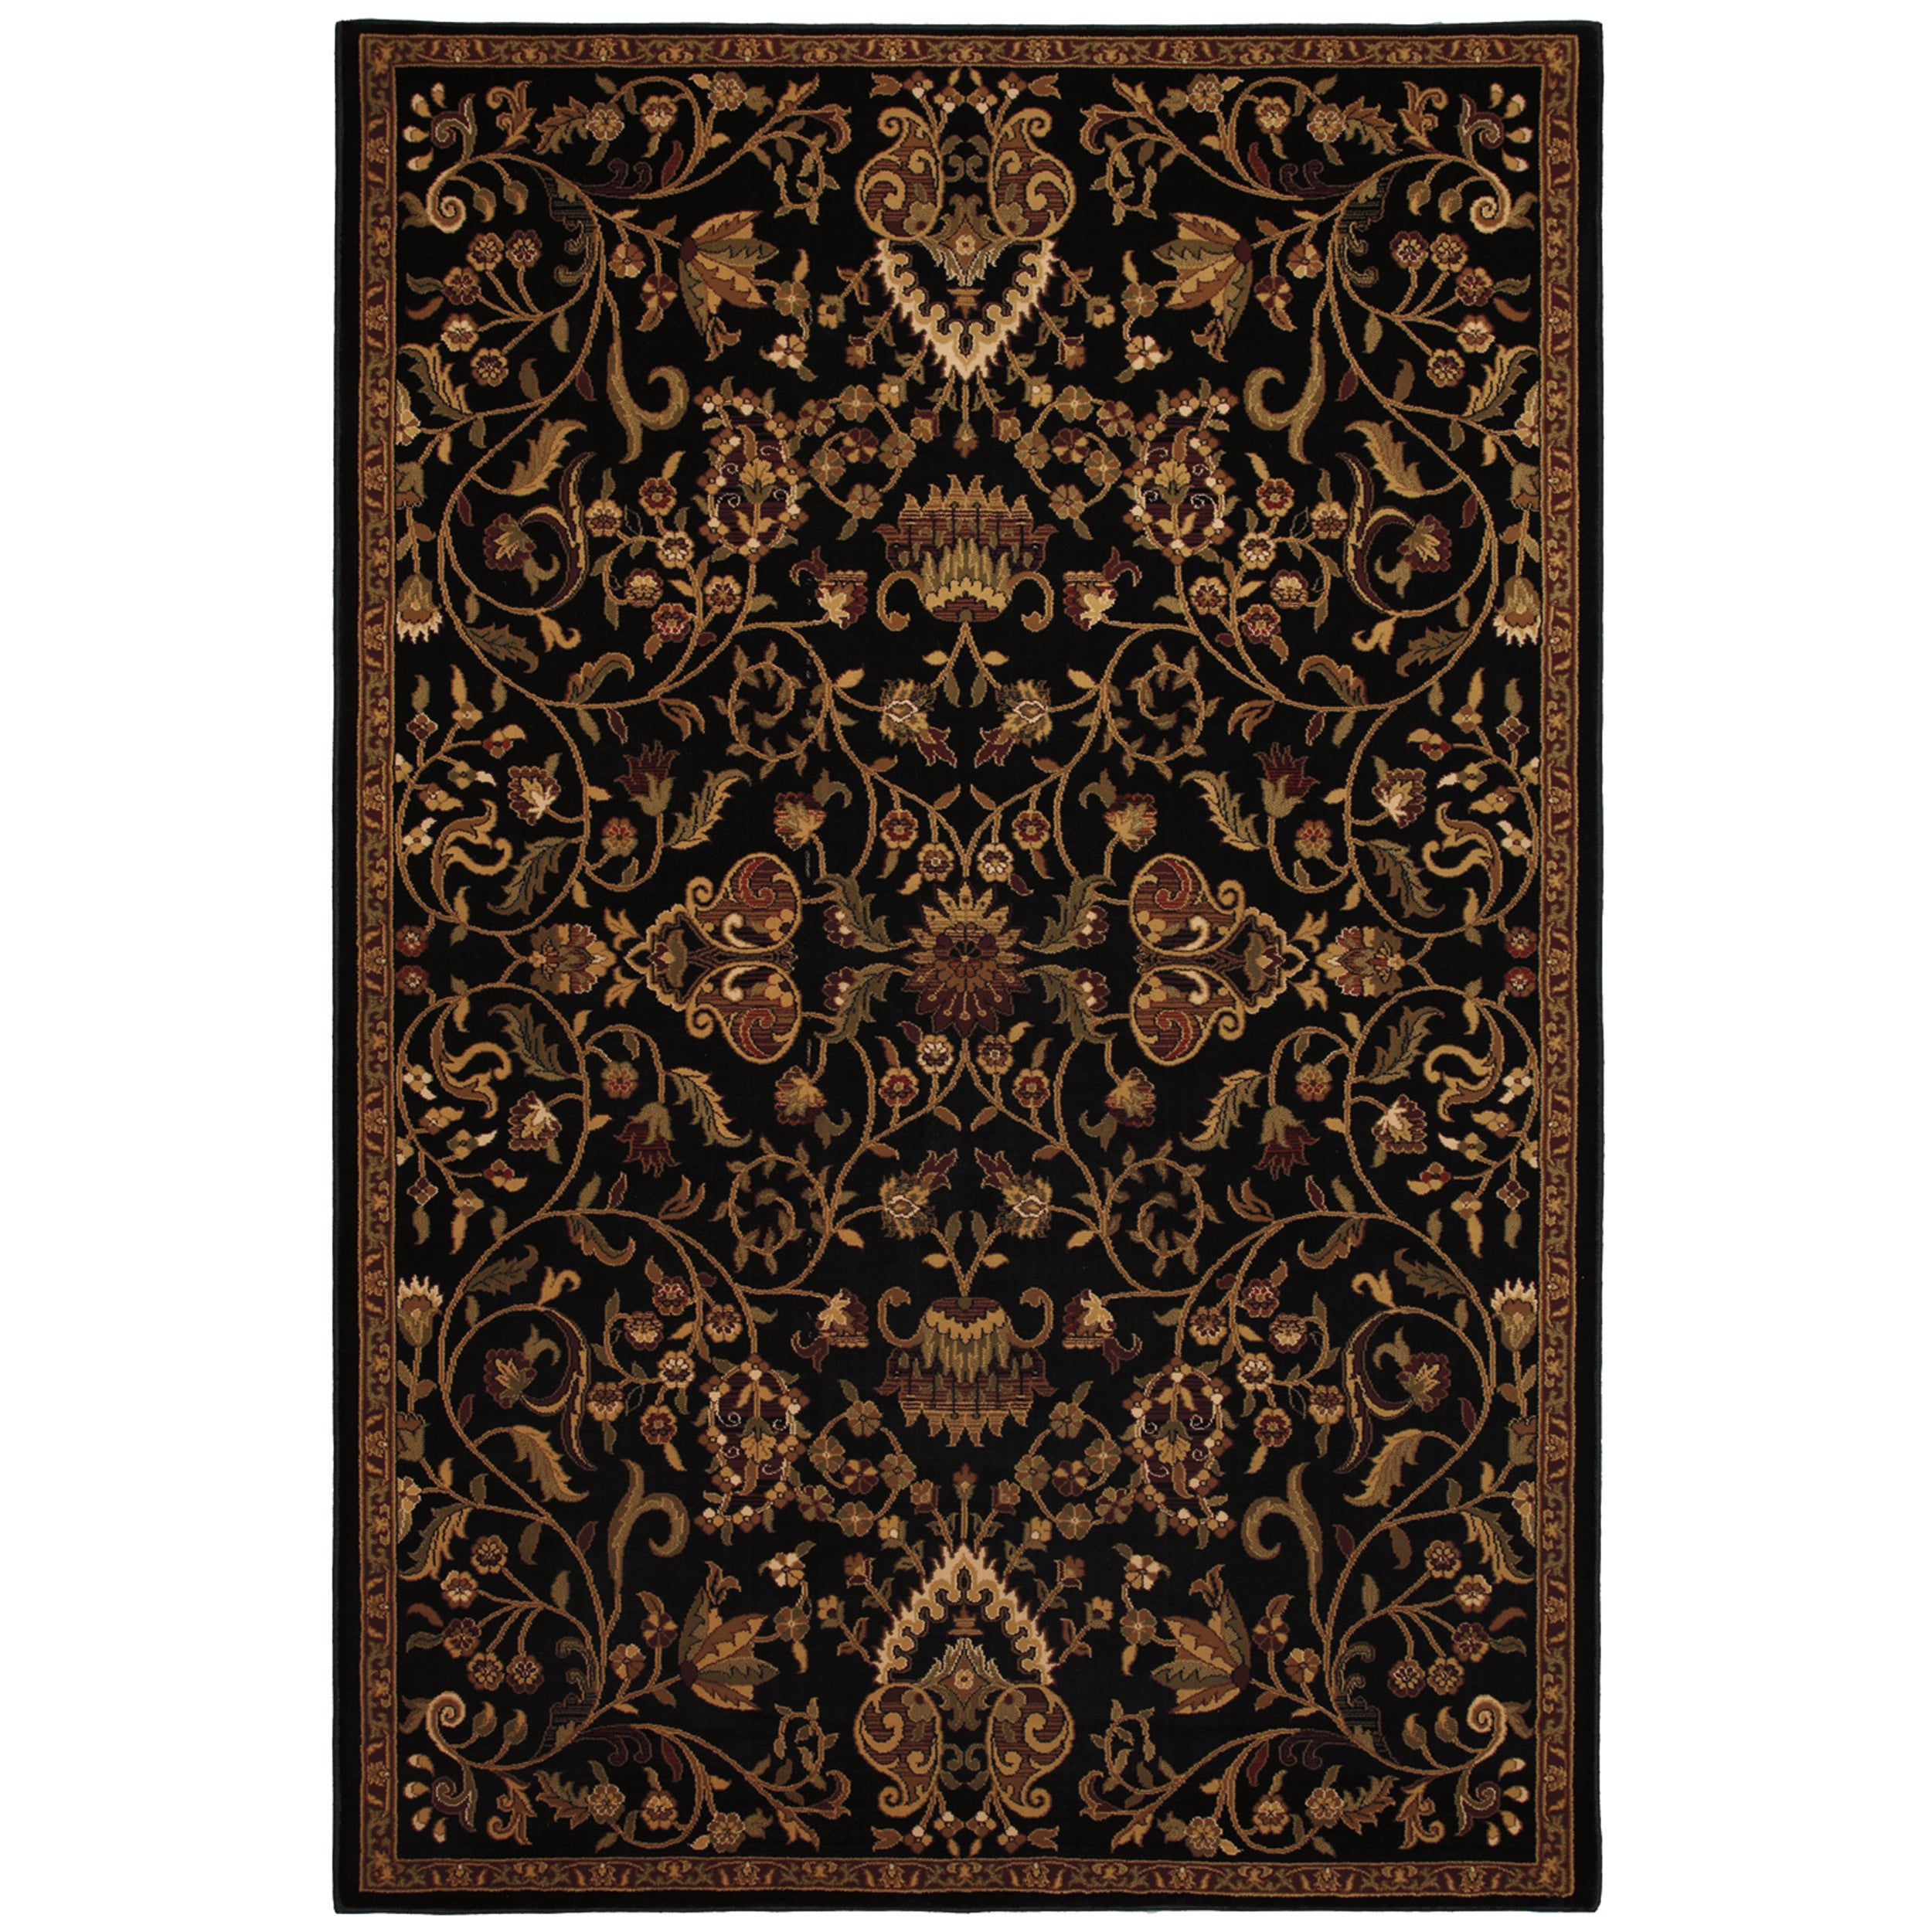 Baroque Black Rug (8' x 11')